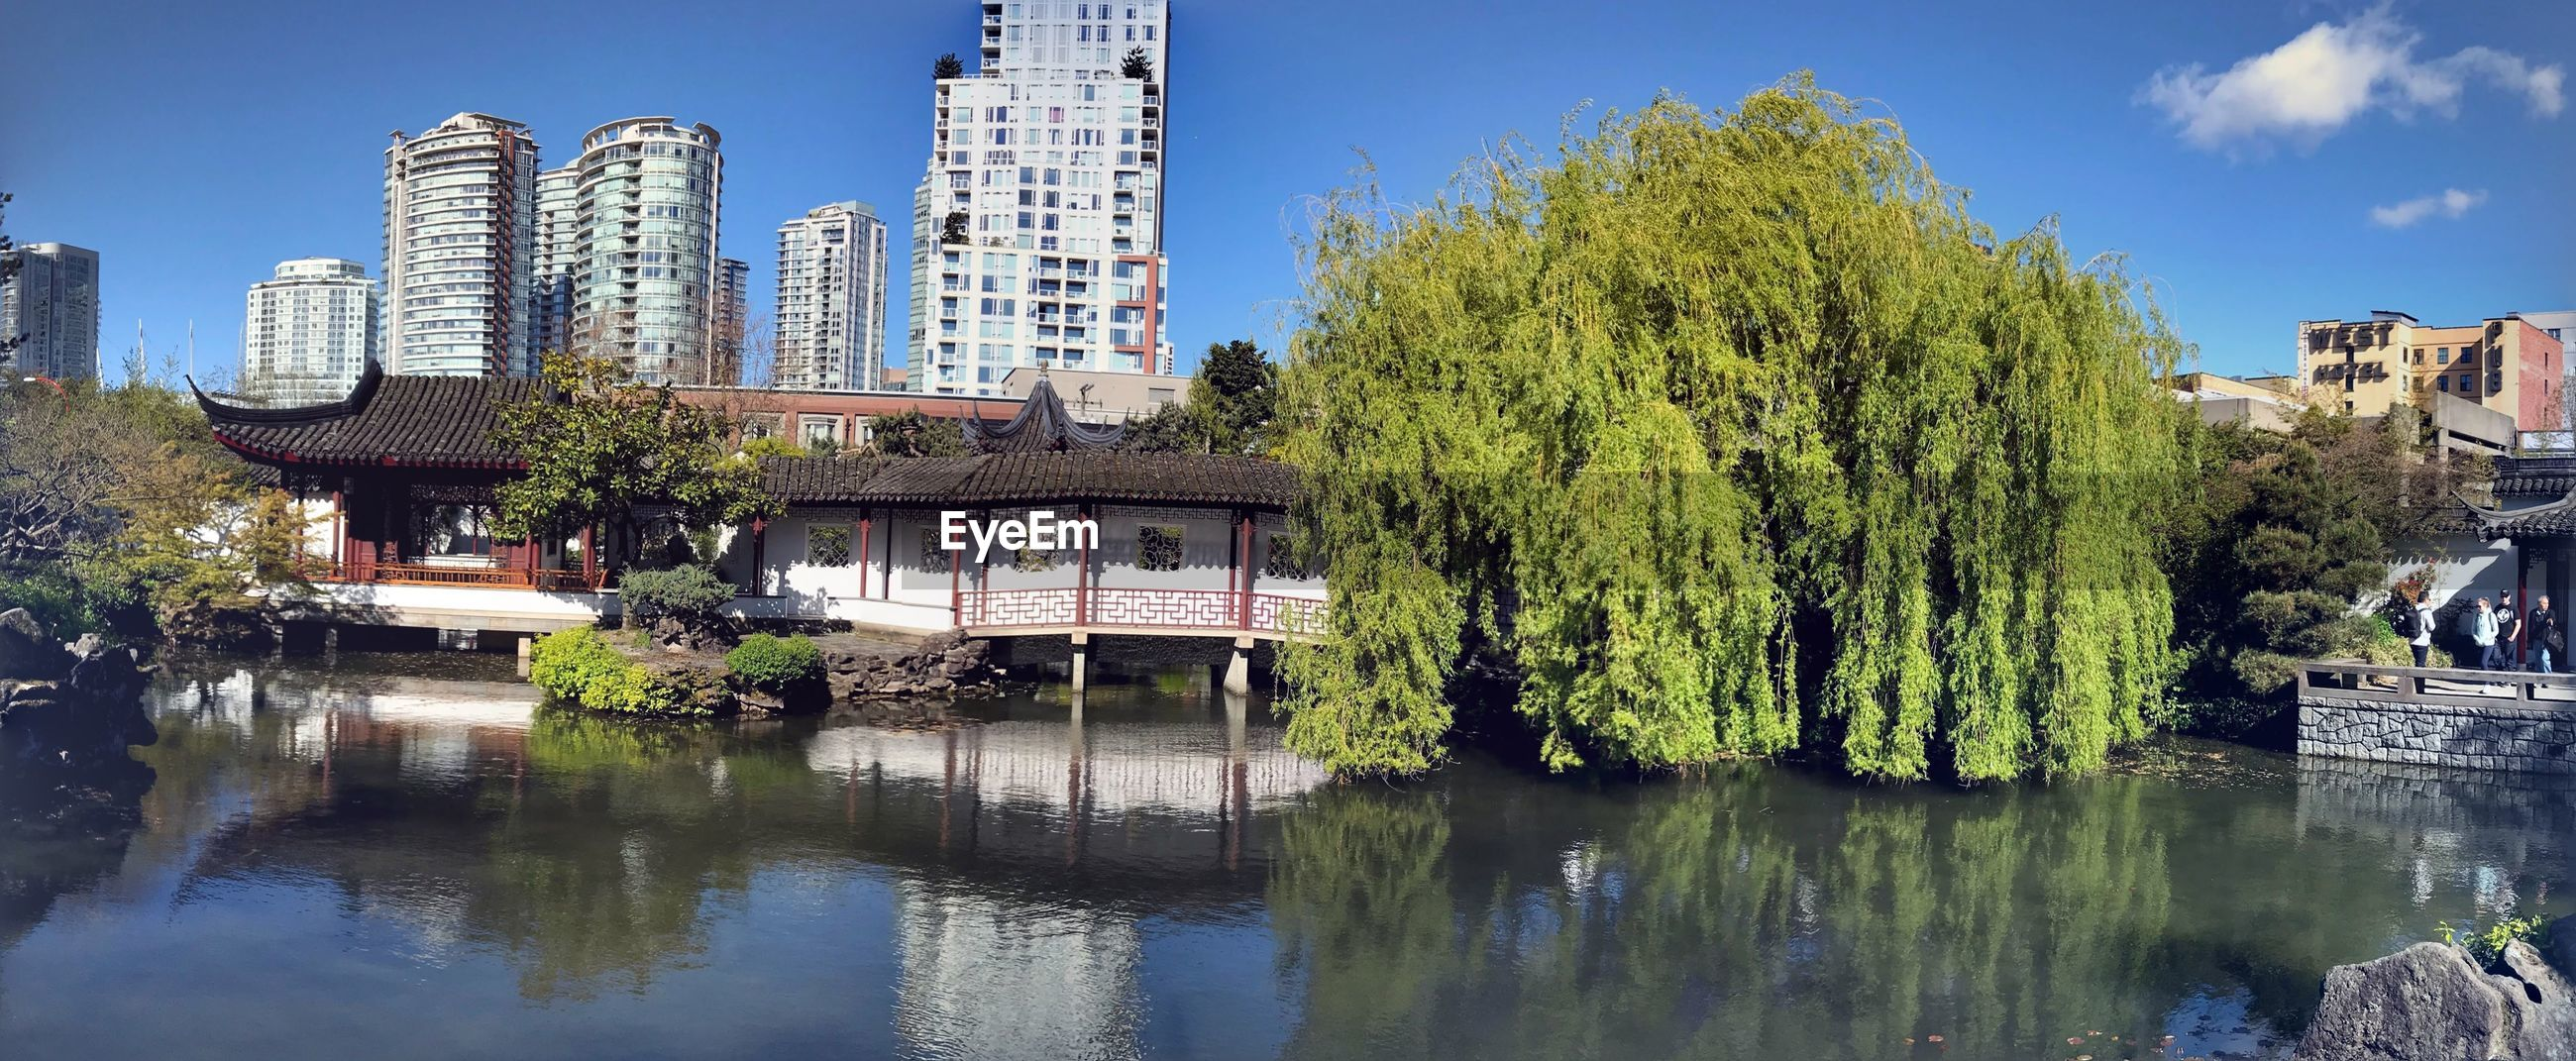 SCENIC VIEW OF LAKE BY TREES AGAINST BUILDINGS